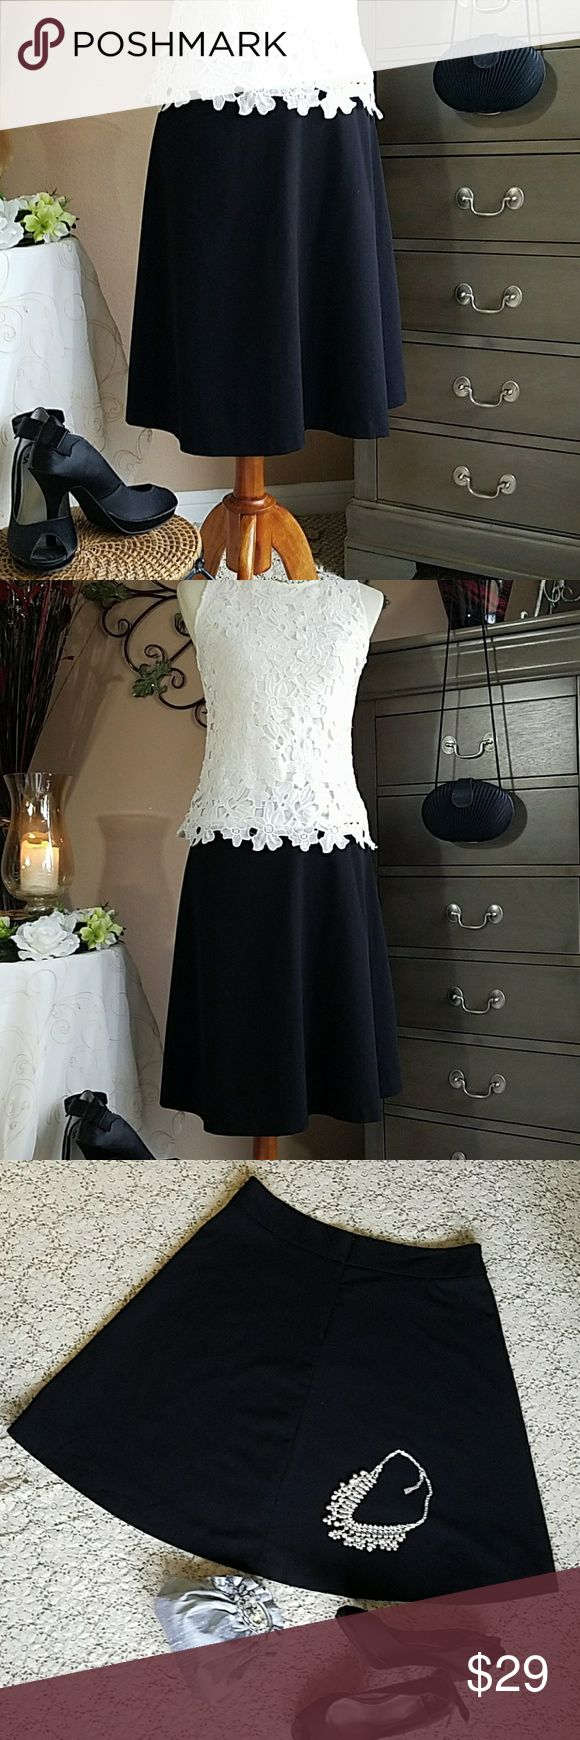 ❤ WHBM Black Circle Skirt ❤ ❤ Gorgeous Black Circle Skirt ❤ wide waist band back hidden zip & hook closure, fully lined, measures 22 Length in Pristine condition 👍👍 White House Black Market Skirts